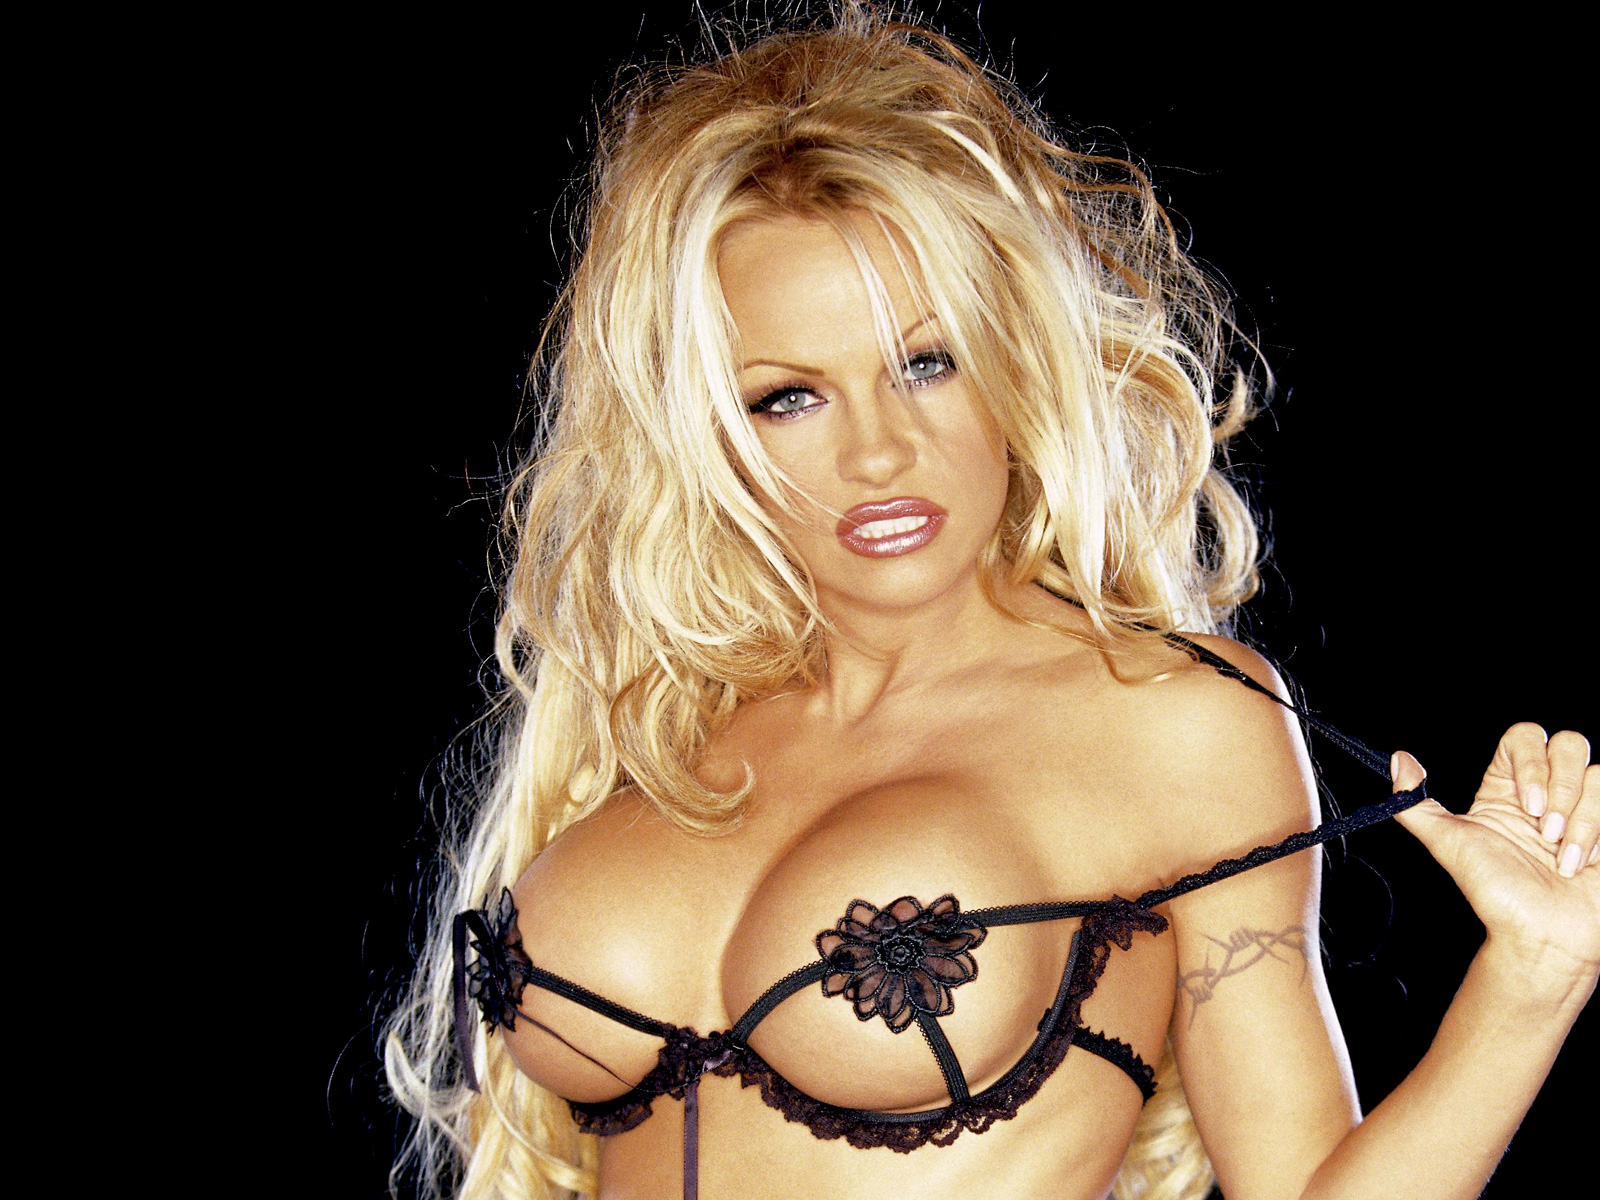 Pamela Anderson Search - XVIDEOSCOM - Free Porn Videos